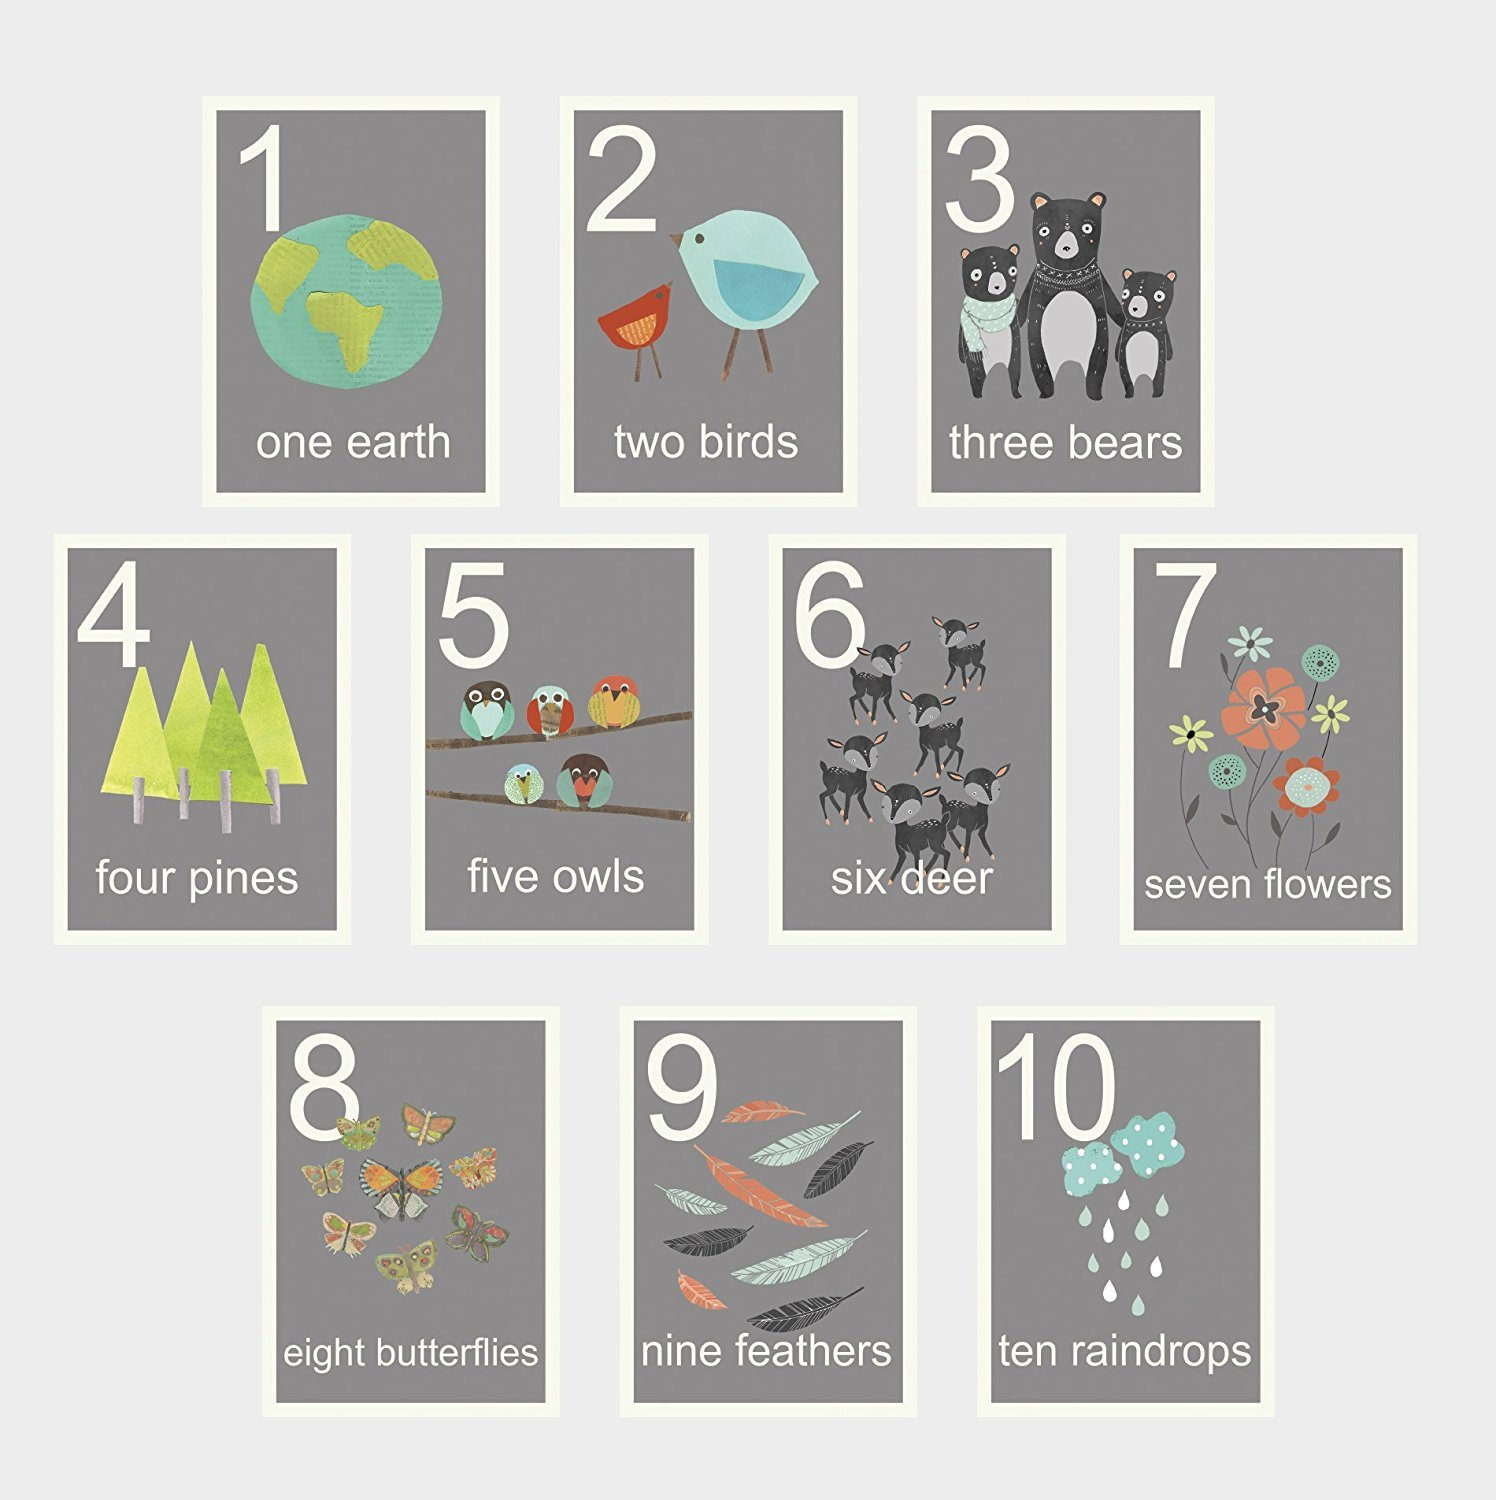 Our World Counting Wall Cards, Number Flash Cards, Set of Ten 5x7 Wall Art Prints, Nursery Wall Art Decor, Kid's Art Decor, Gender Neutral Nursery, Nature Themed, Woodland Nursery, Preschool Wall Art